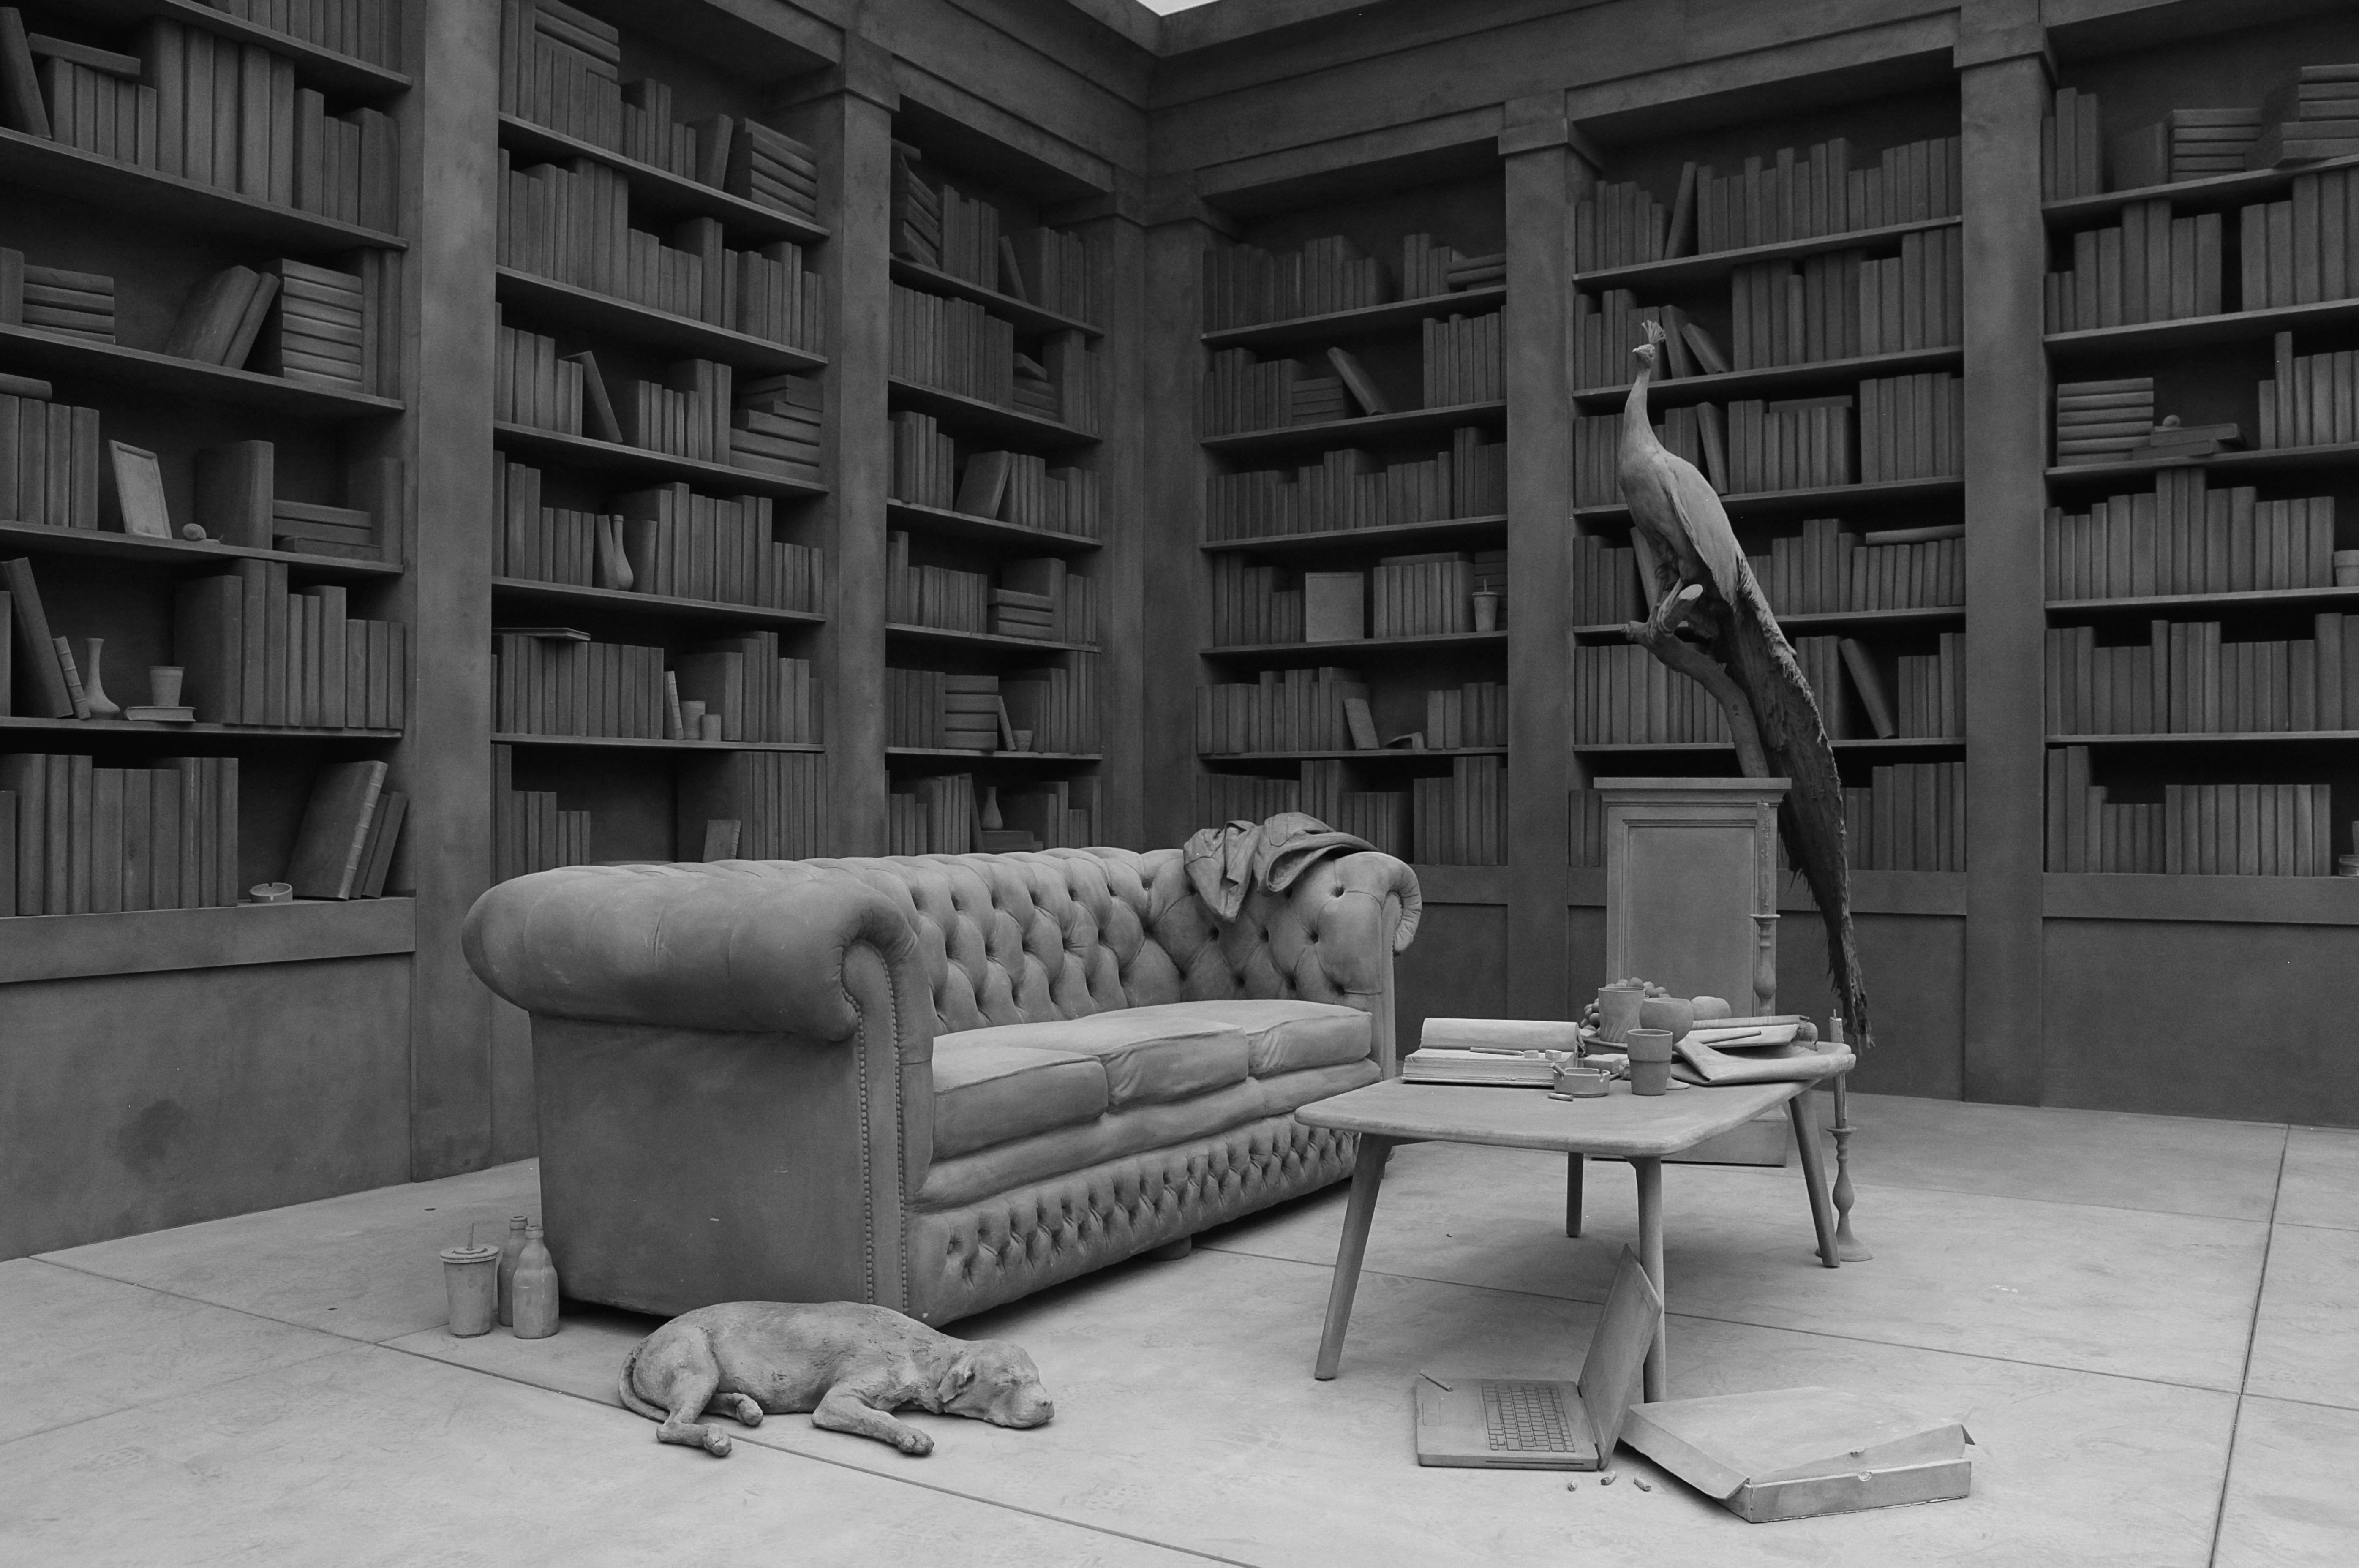 Hans Op de Beeck: The Collector's House, 2016 © Hans Op the Beeck